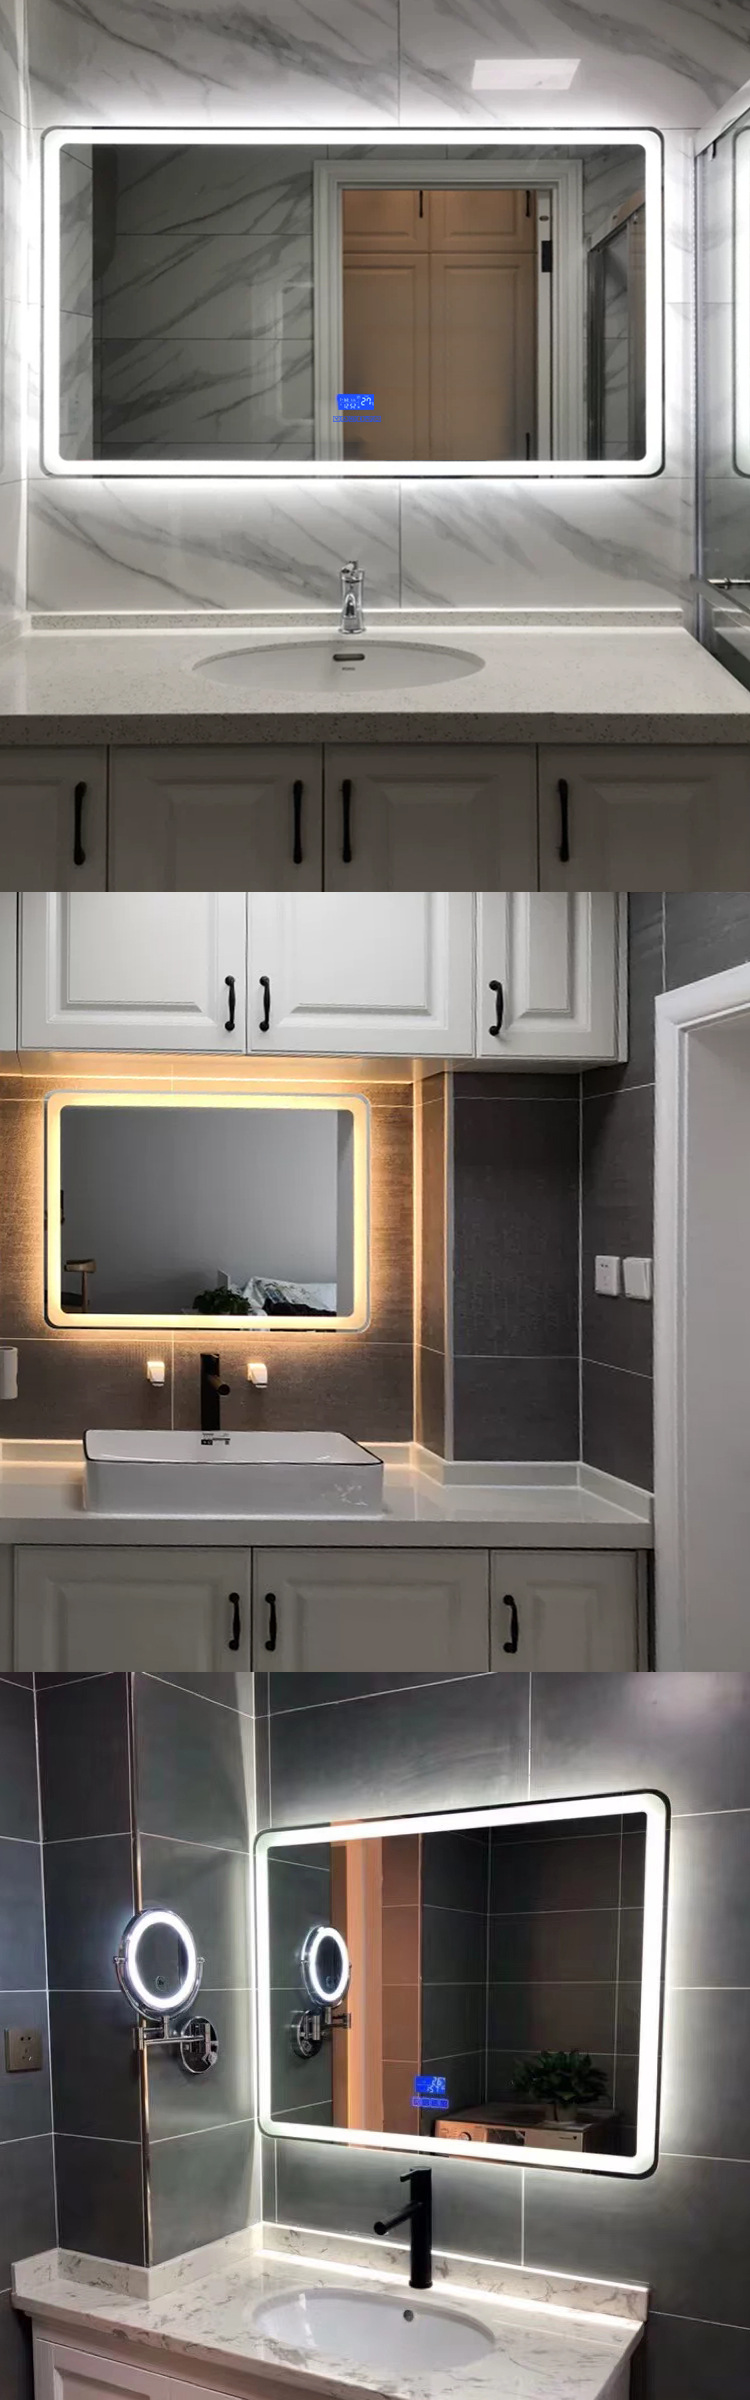 Big Vanity Mirror With LightsofApplication Big Mirror With Lights